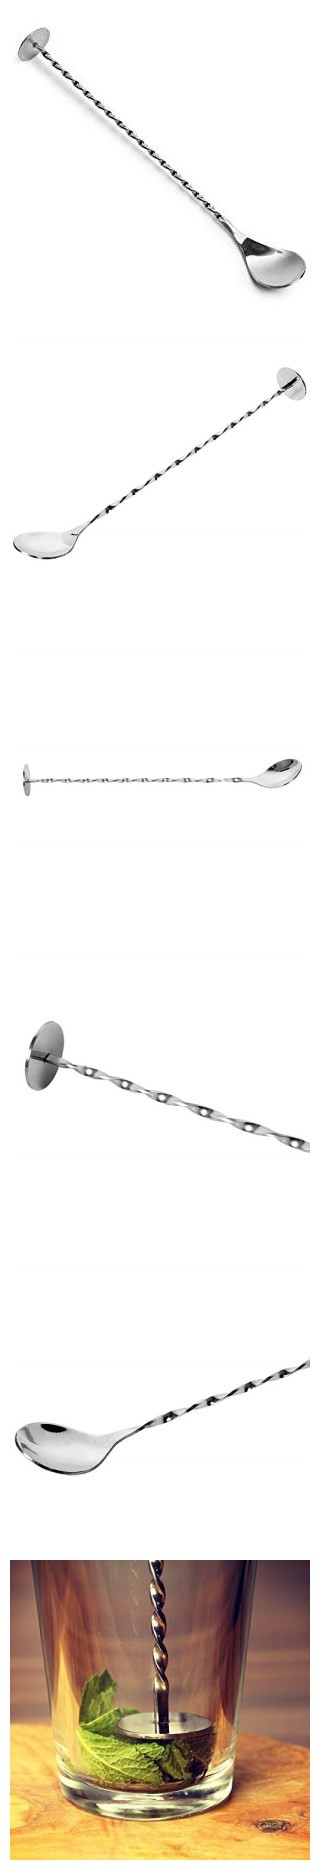 Premium Stainless Steel Long Mixing Spoon Cocktail Spoon Bar Spoon